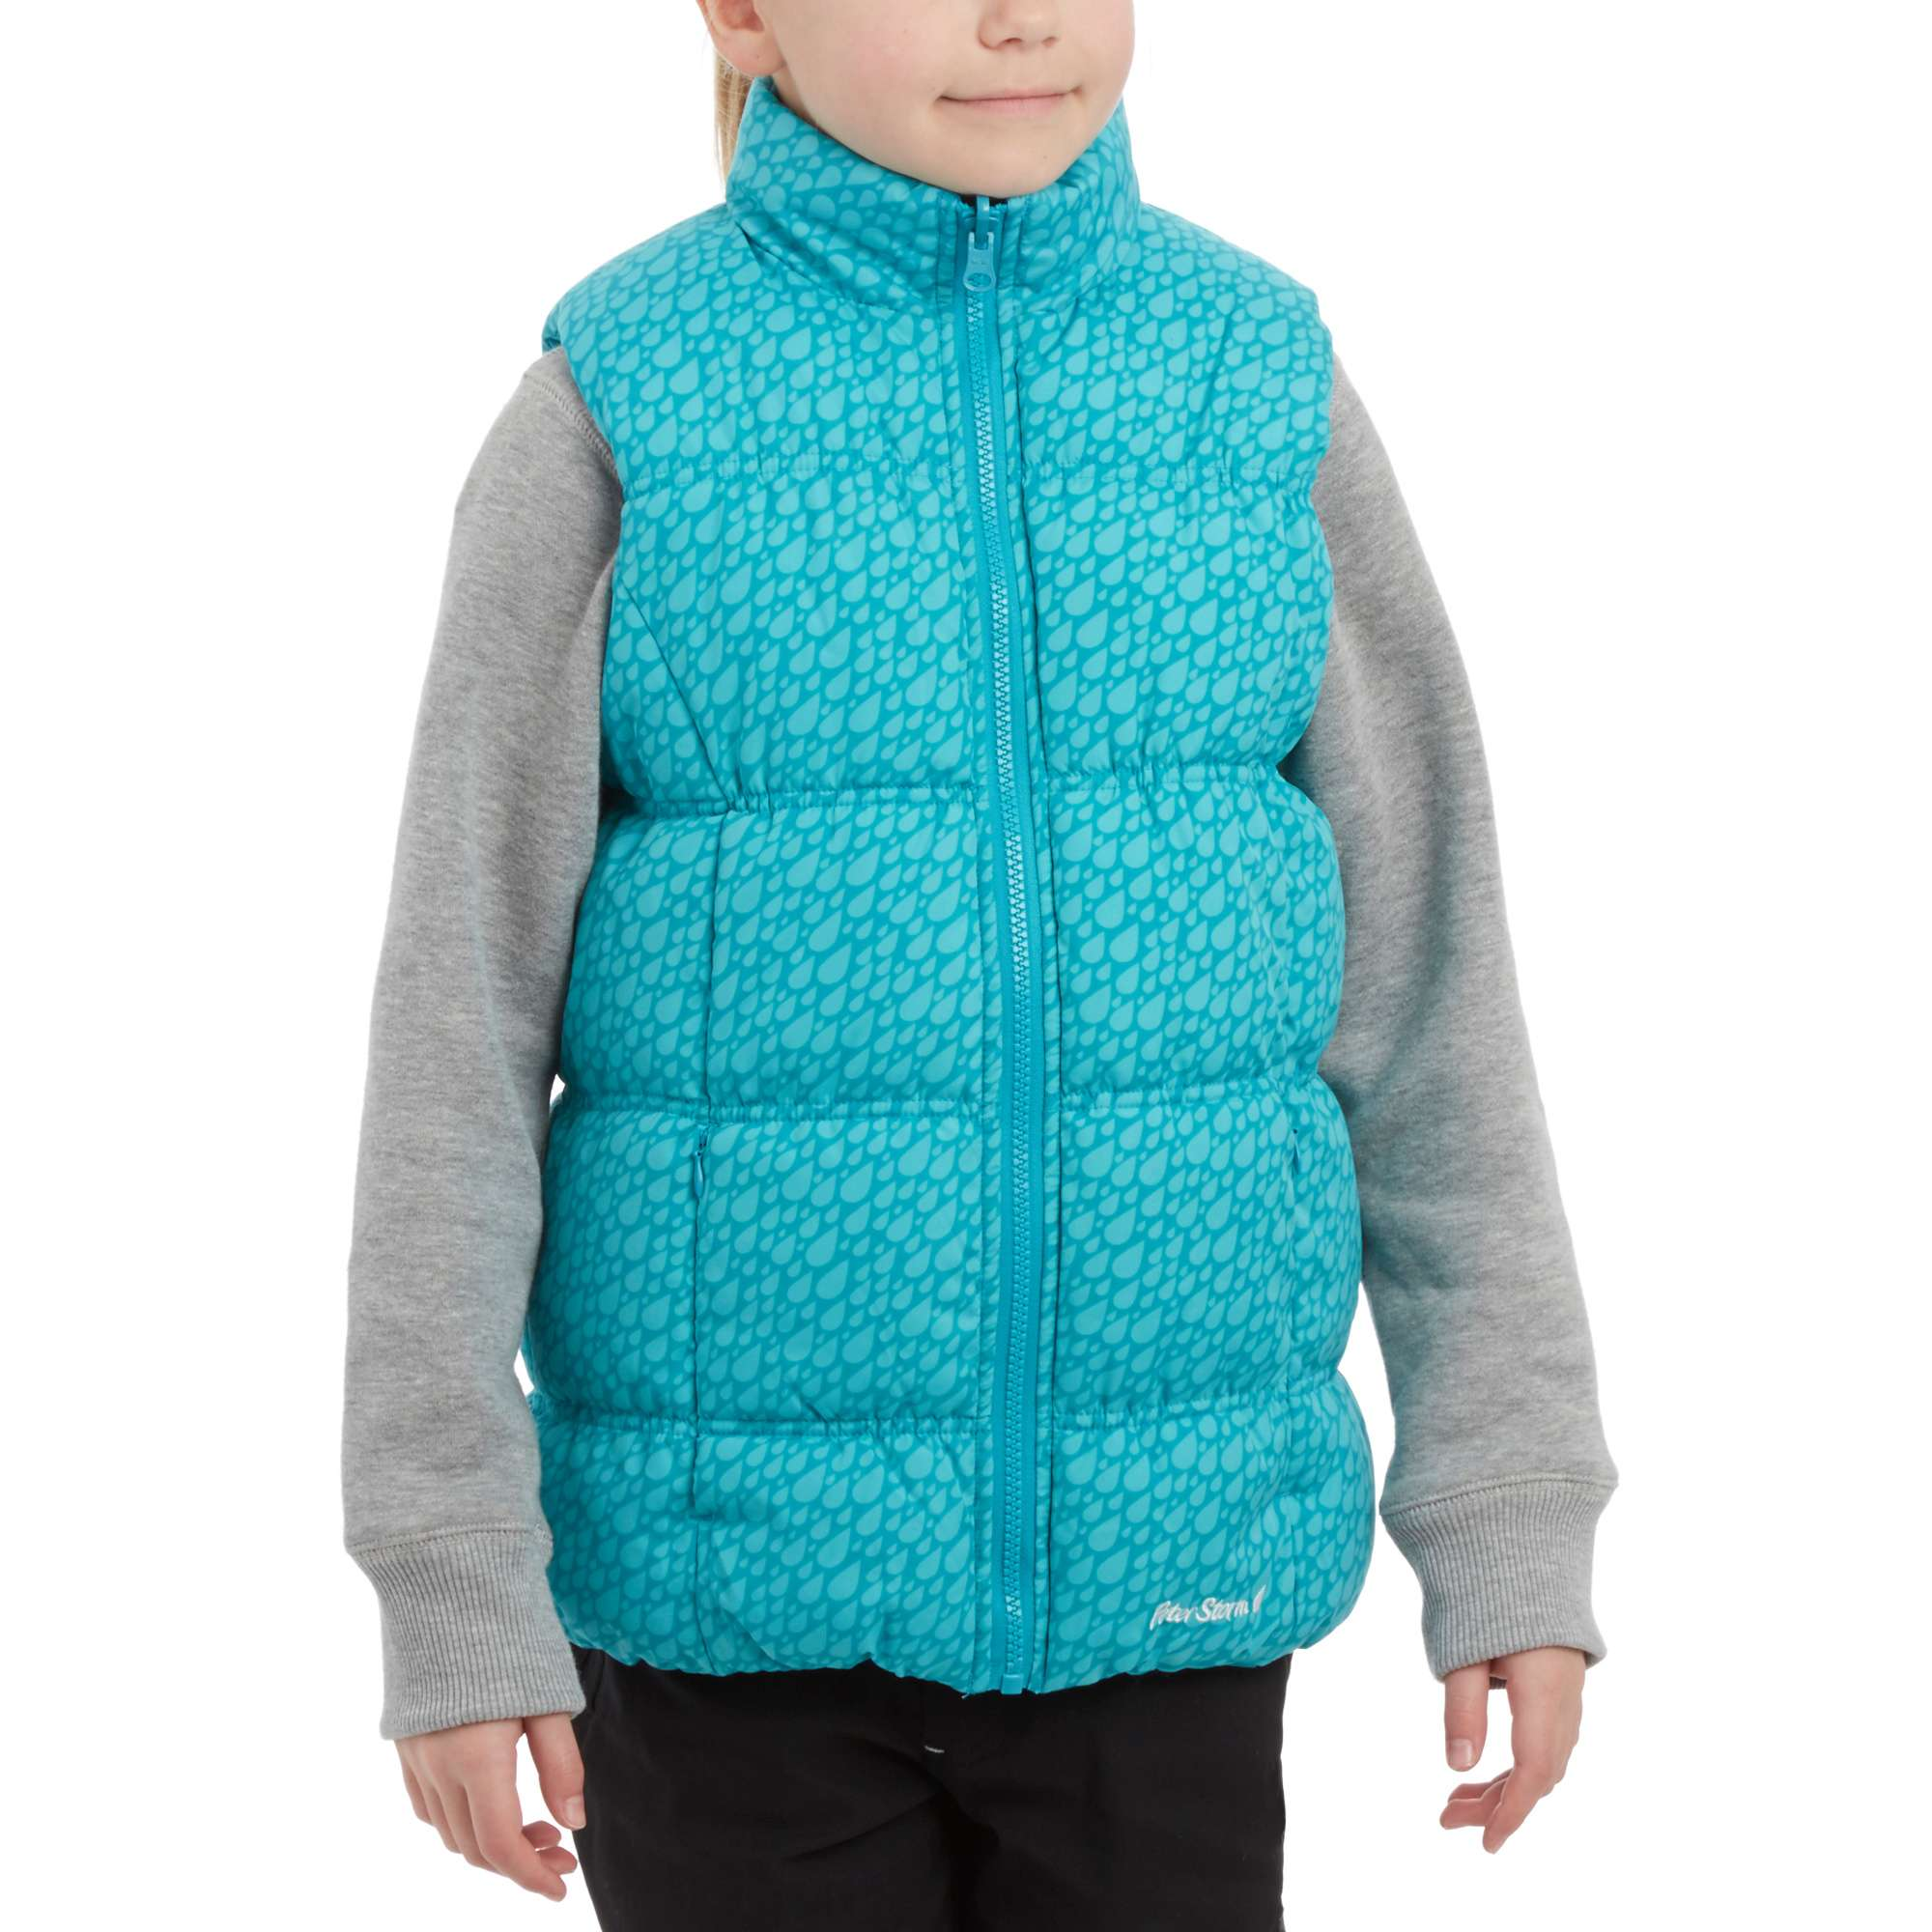 PETER STORM Girls' Cinder Reversible Gilet